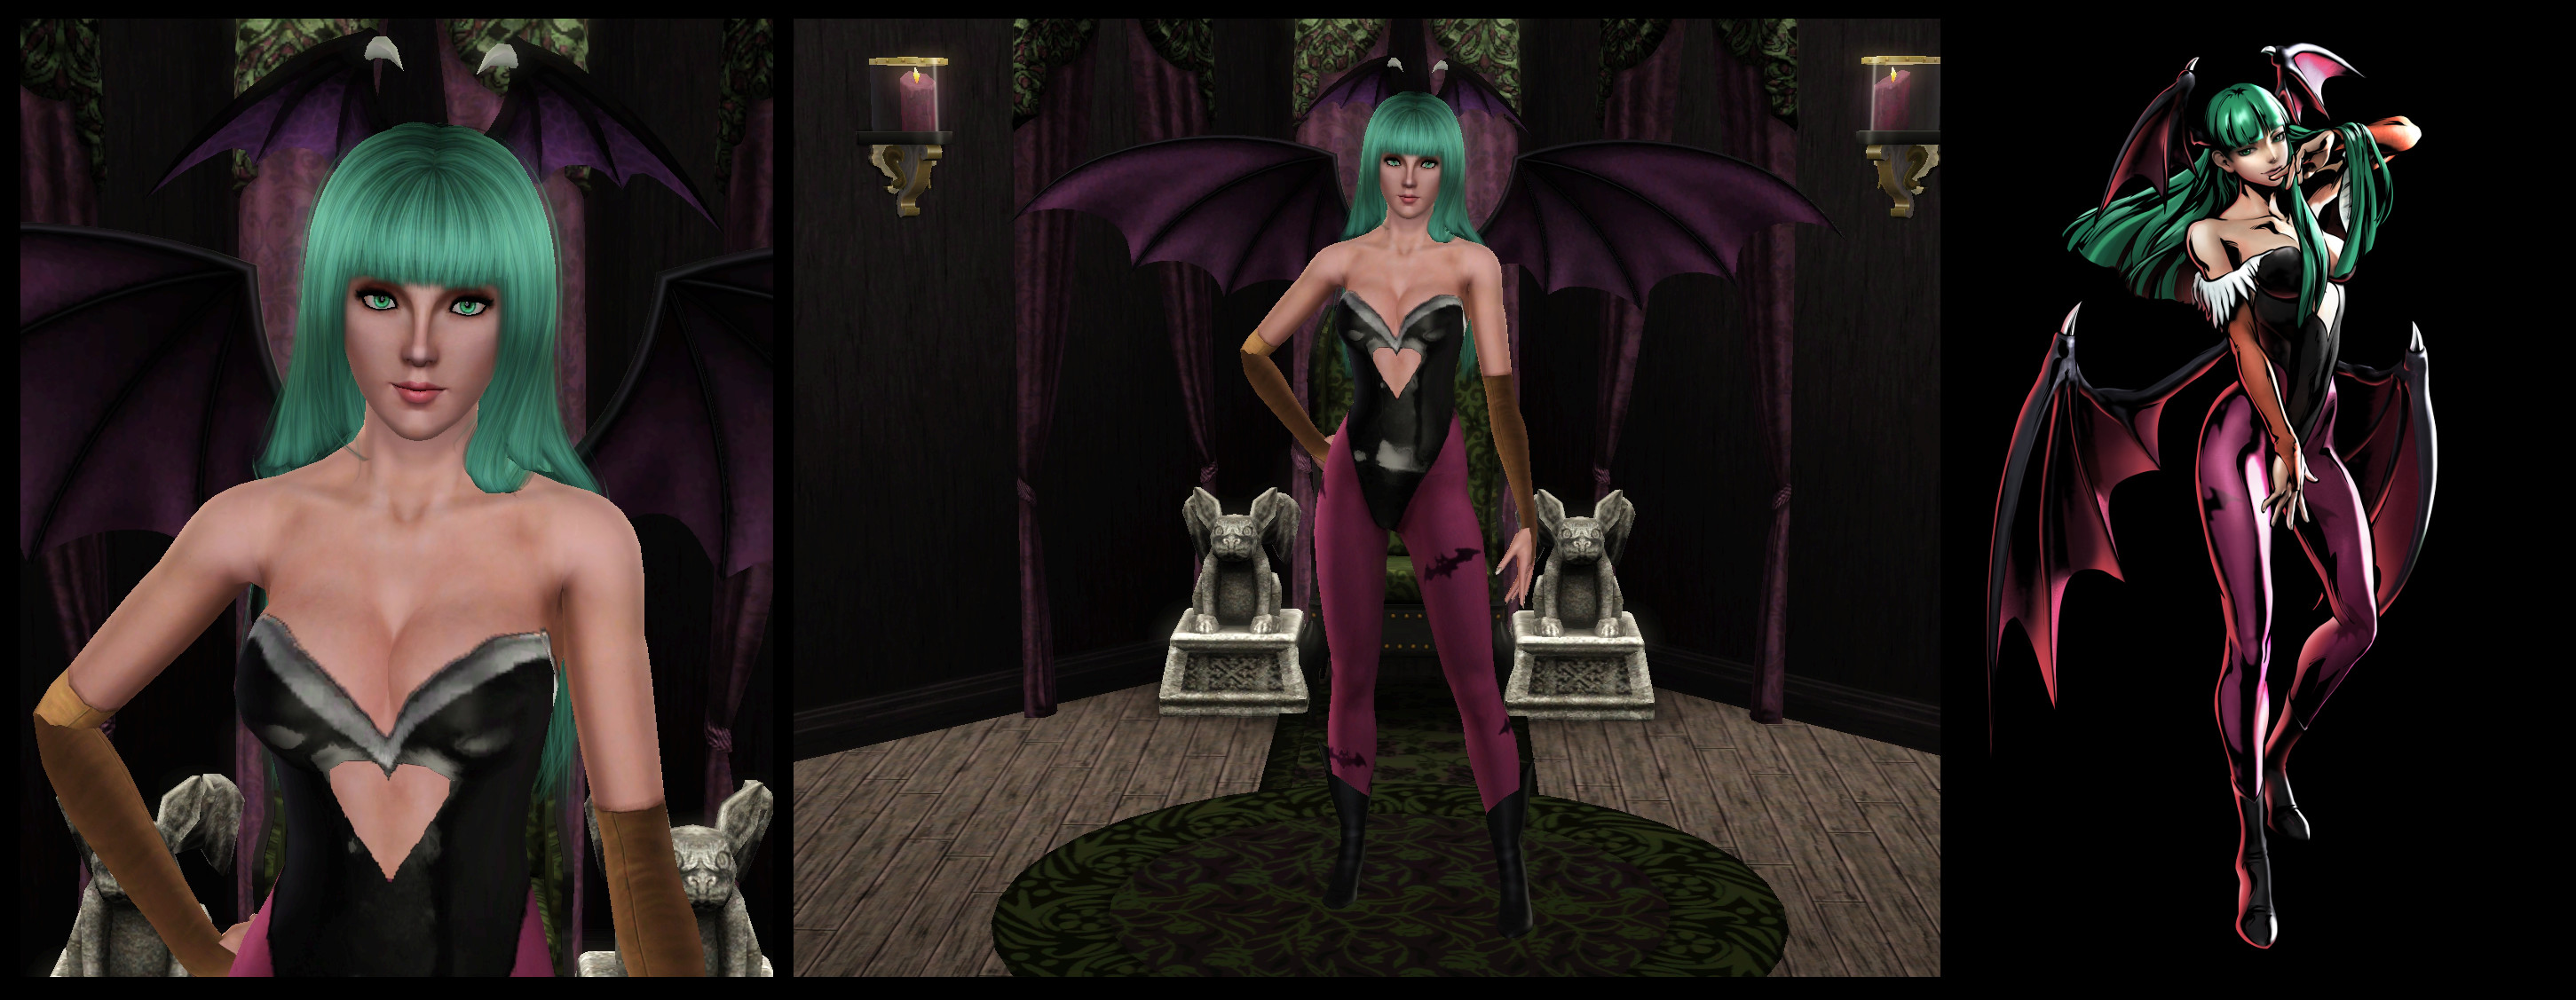 2902x1127 ... The Sims 3: Darkstalkers - Morrigan by Tx-Slade-xT